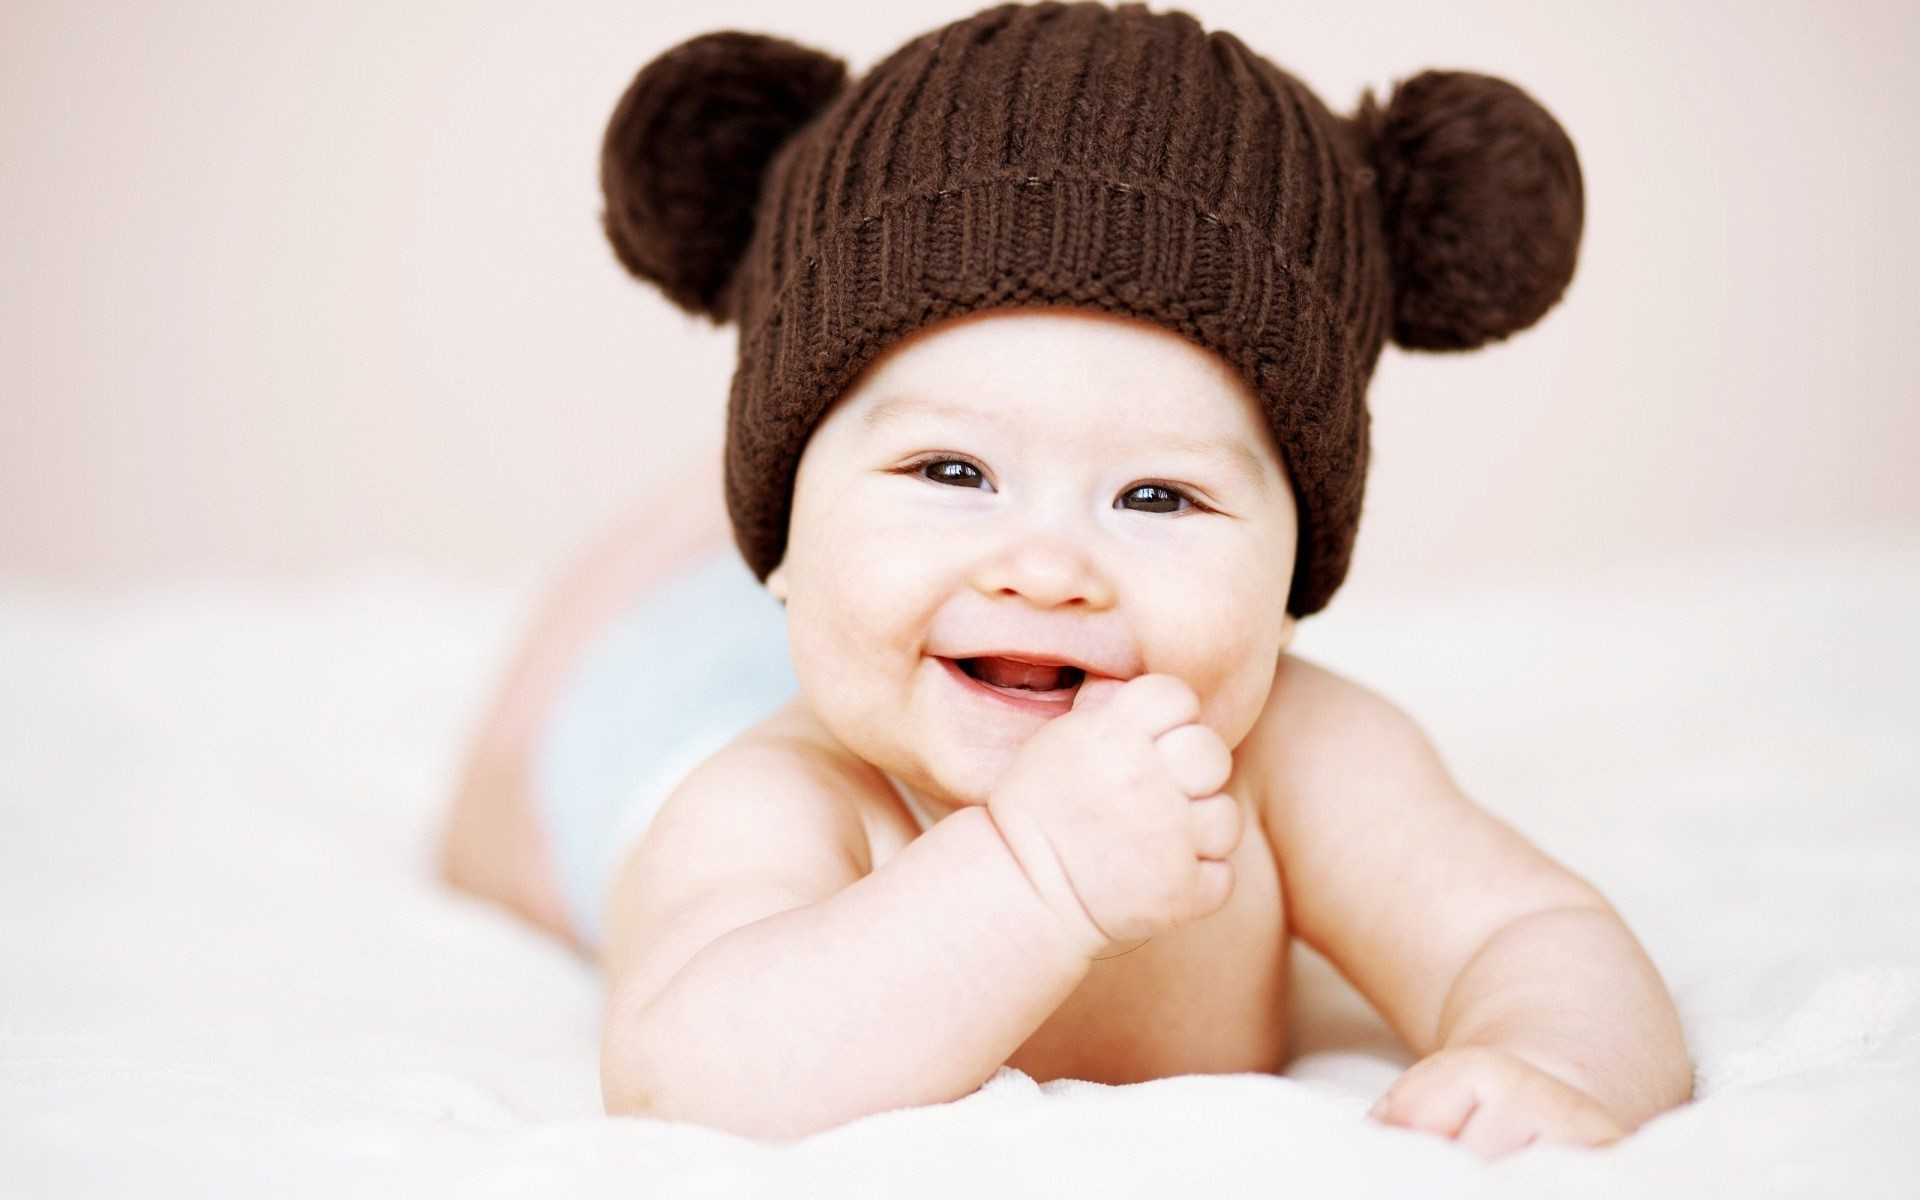 Cute baby backgrounds 40 images 1920x1080 babies wallpaper hd wallpapers backgrounds of your choice voltagebd Images